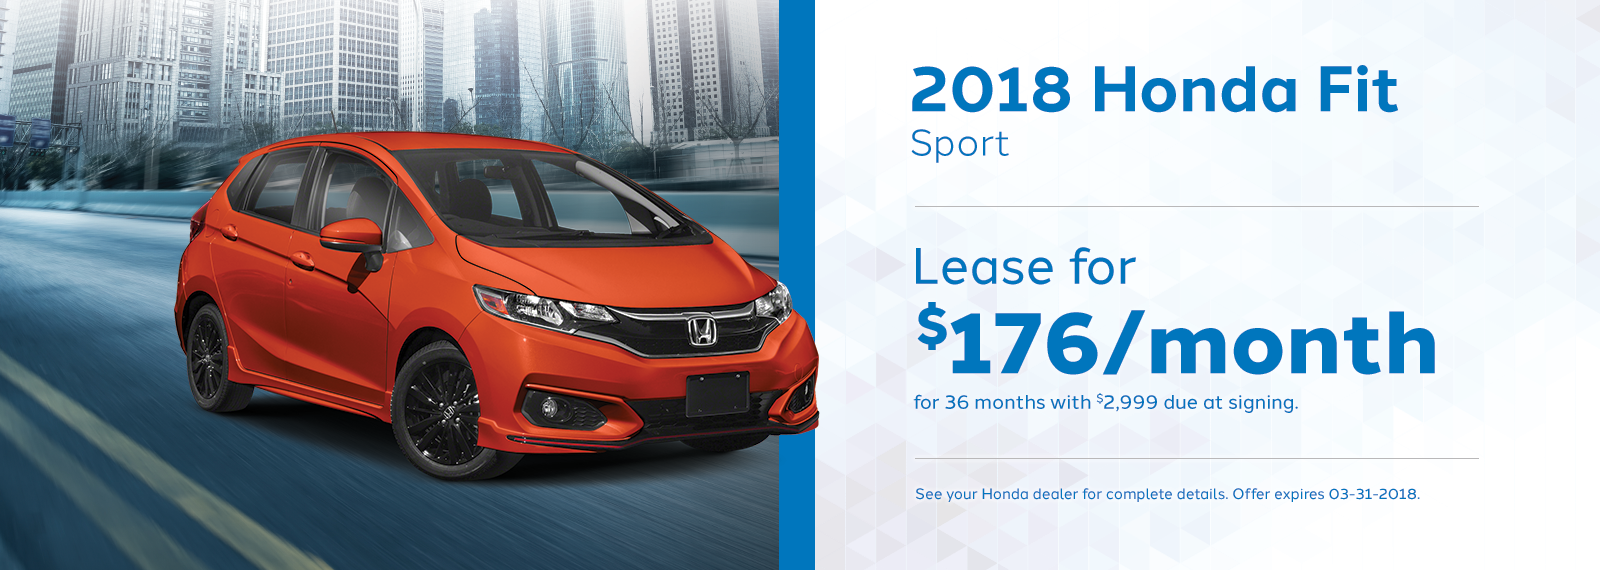 Fit March Offer Genthe Honda Homepage.